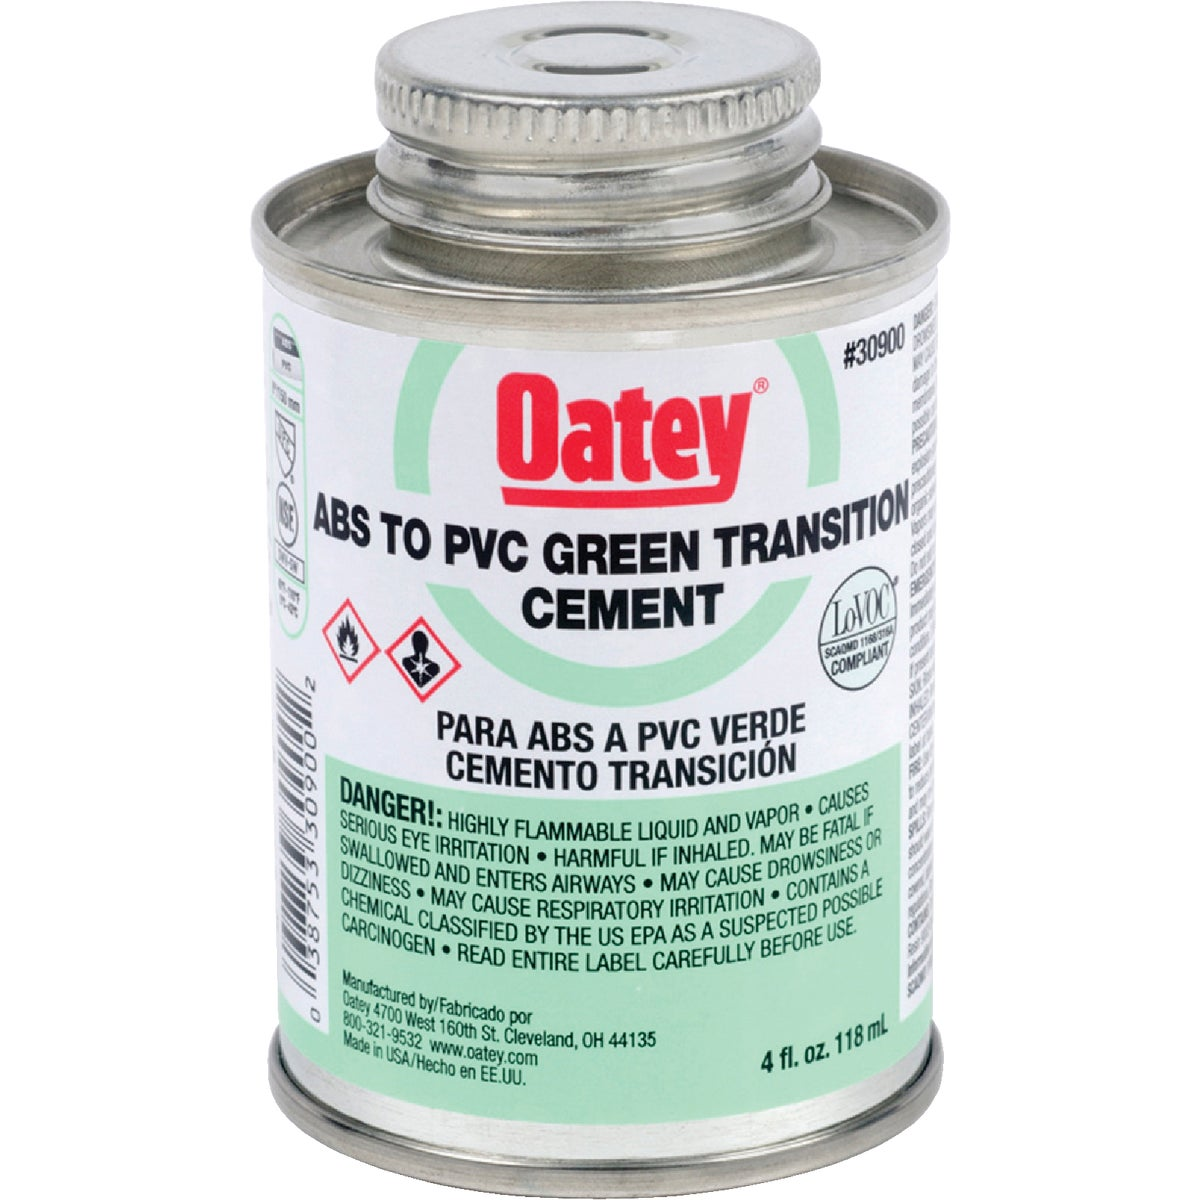 1/4PINT ABS/PVC CEMENT - 30900 by Oatey Scs